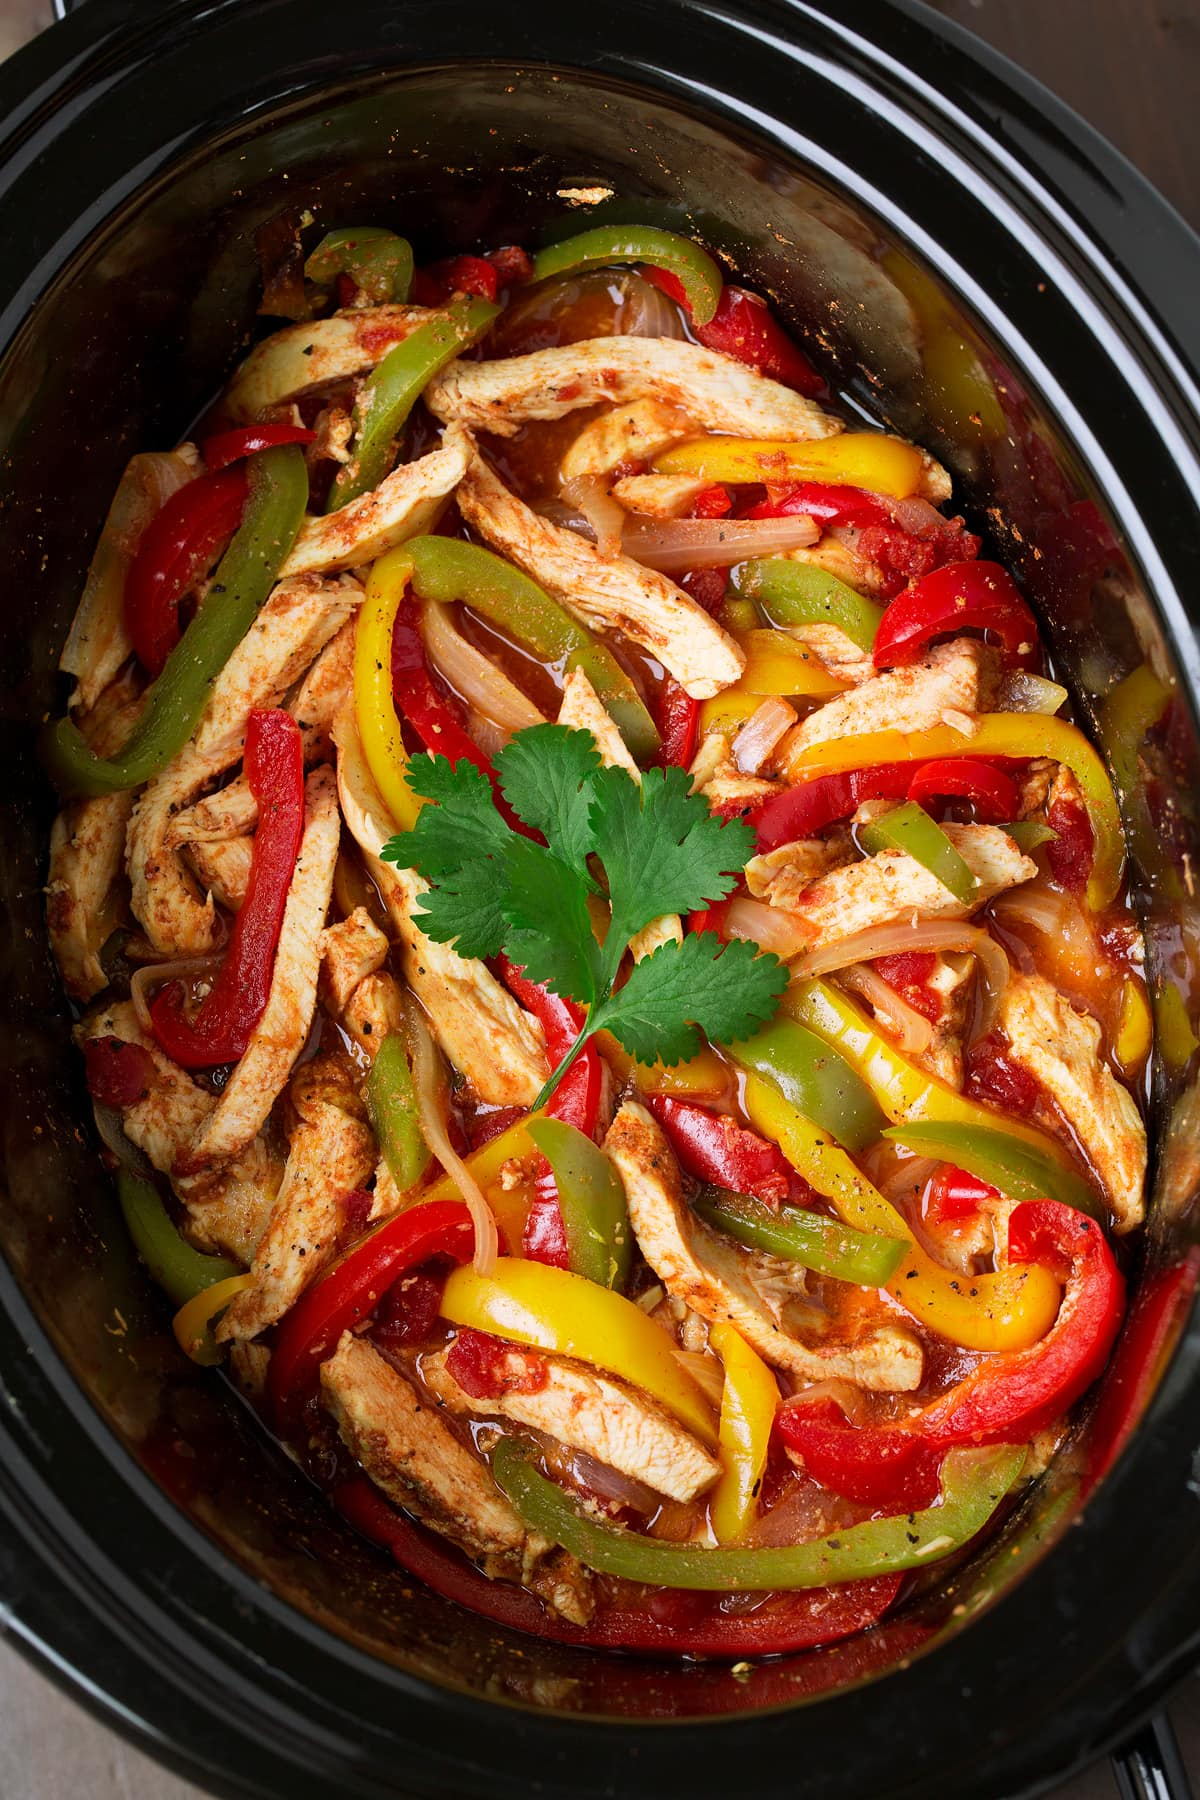 Crockpot Chicken Fajitas shown in a slow cooker.